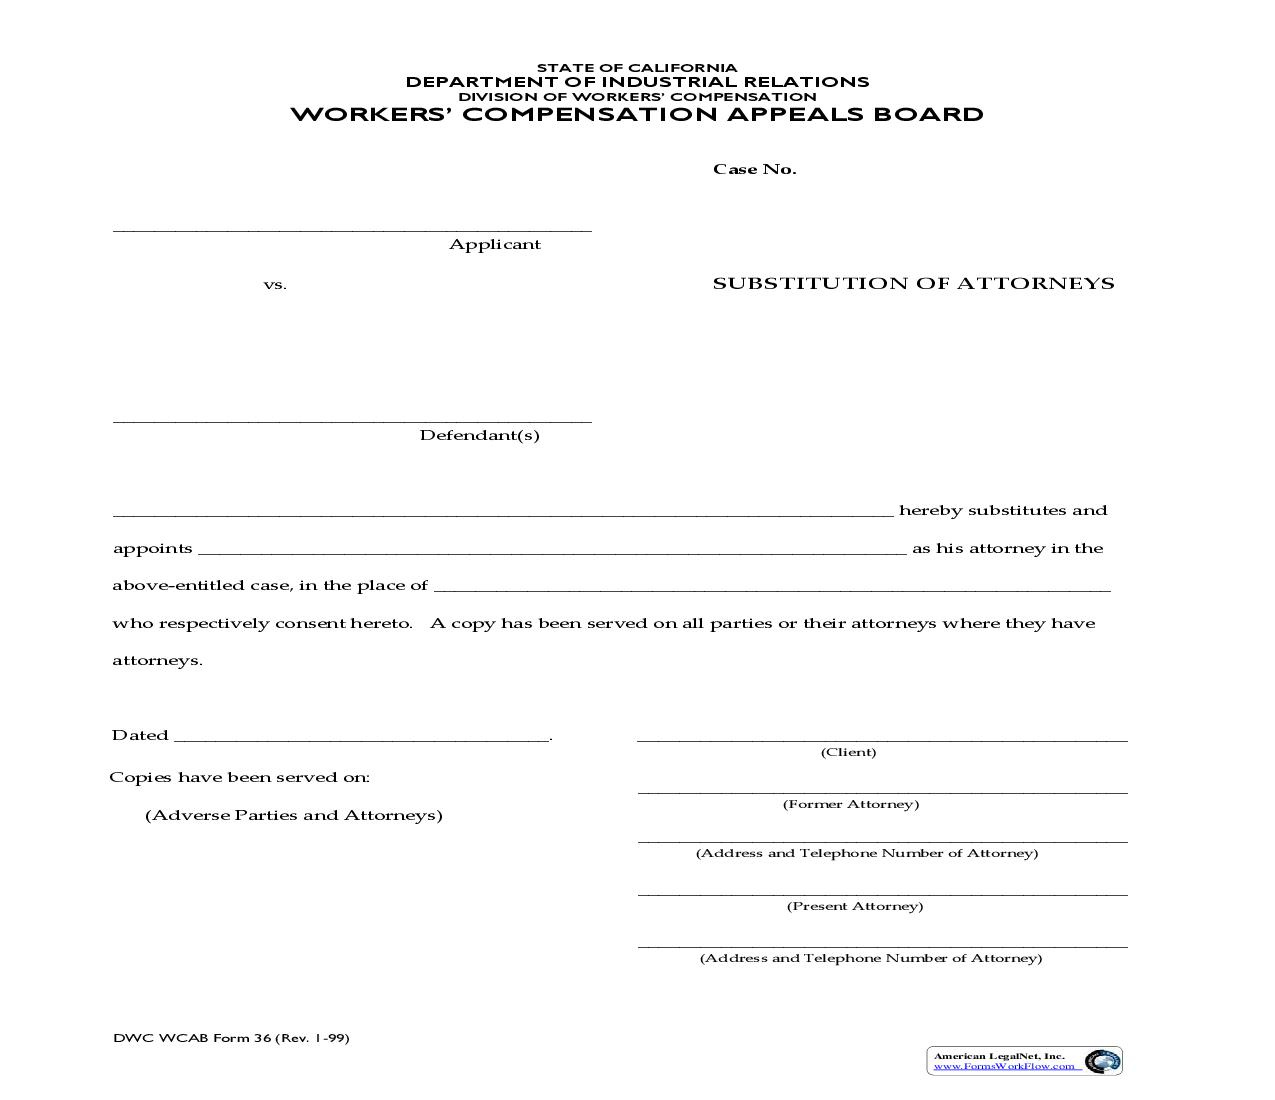 Substitution Of Attorneys {DWC WCAB 36} | Pdf Fpdf Doc Docx | California